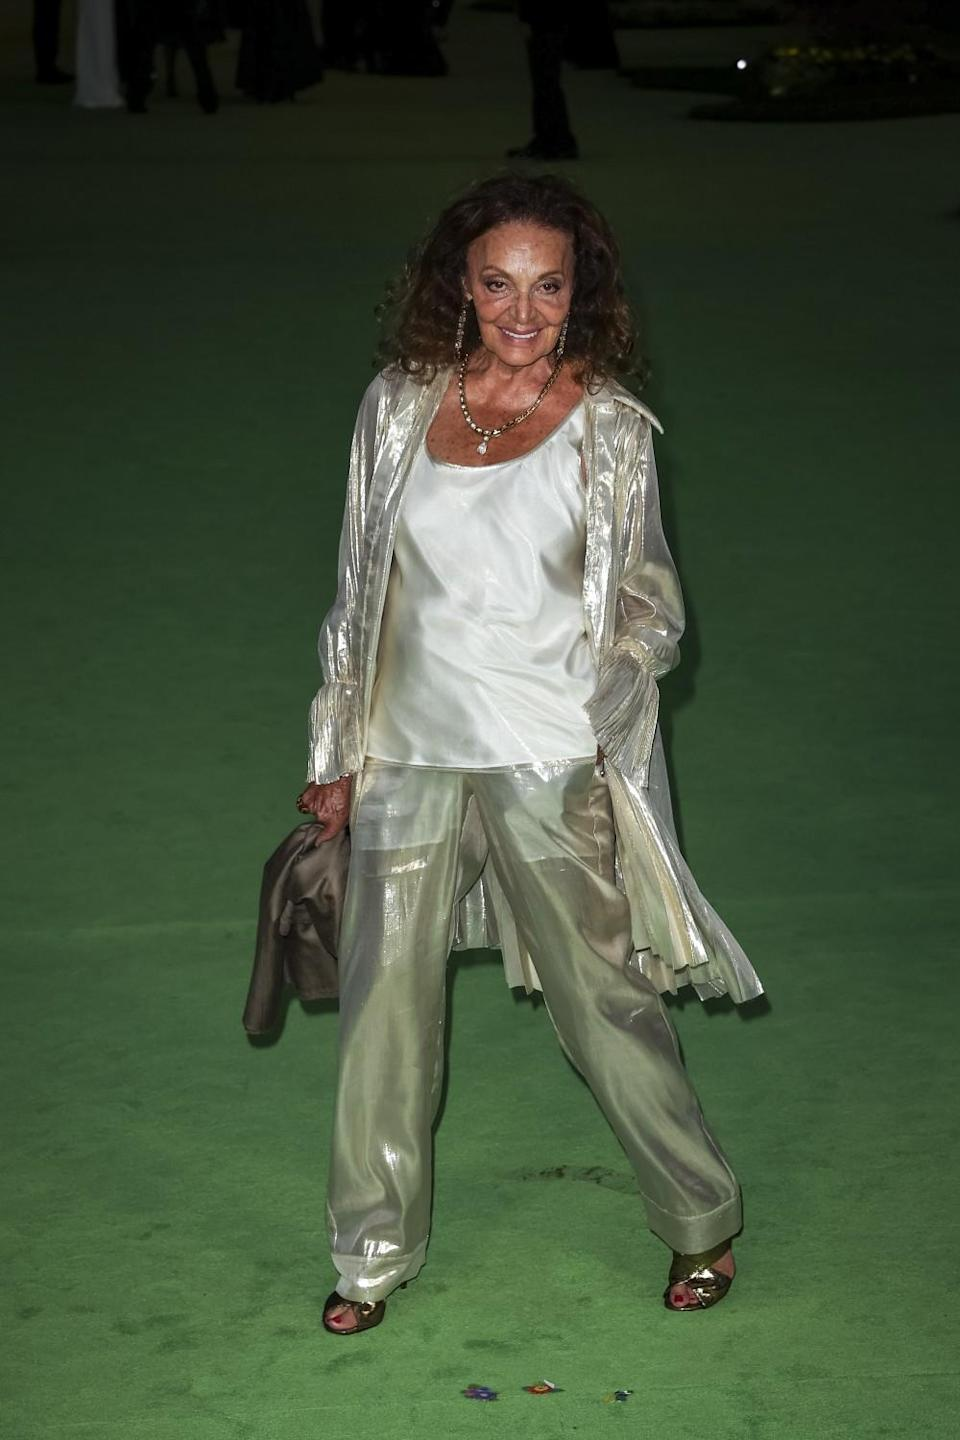 A woman in a silver suit posing on a green carpet